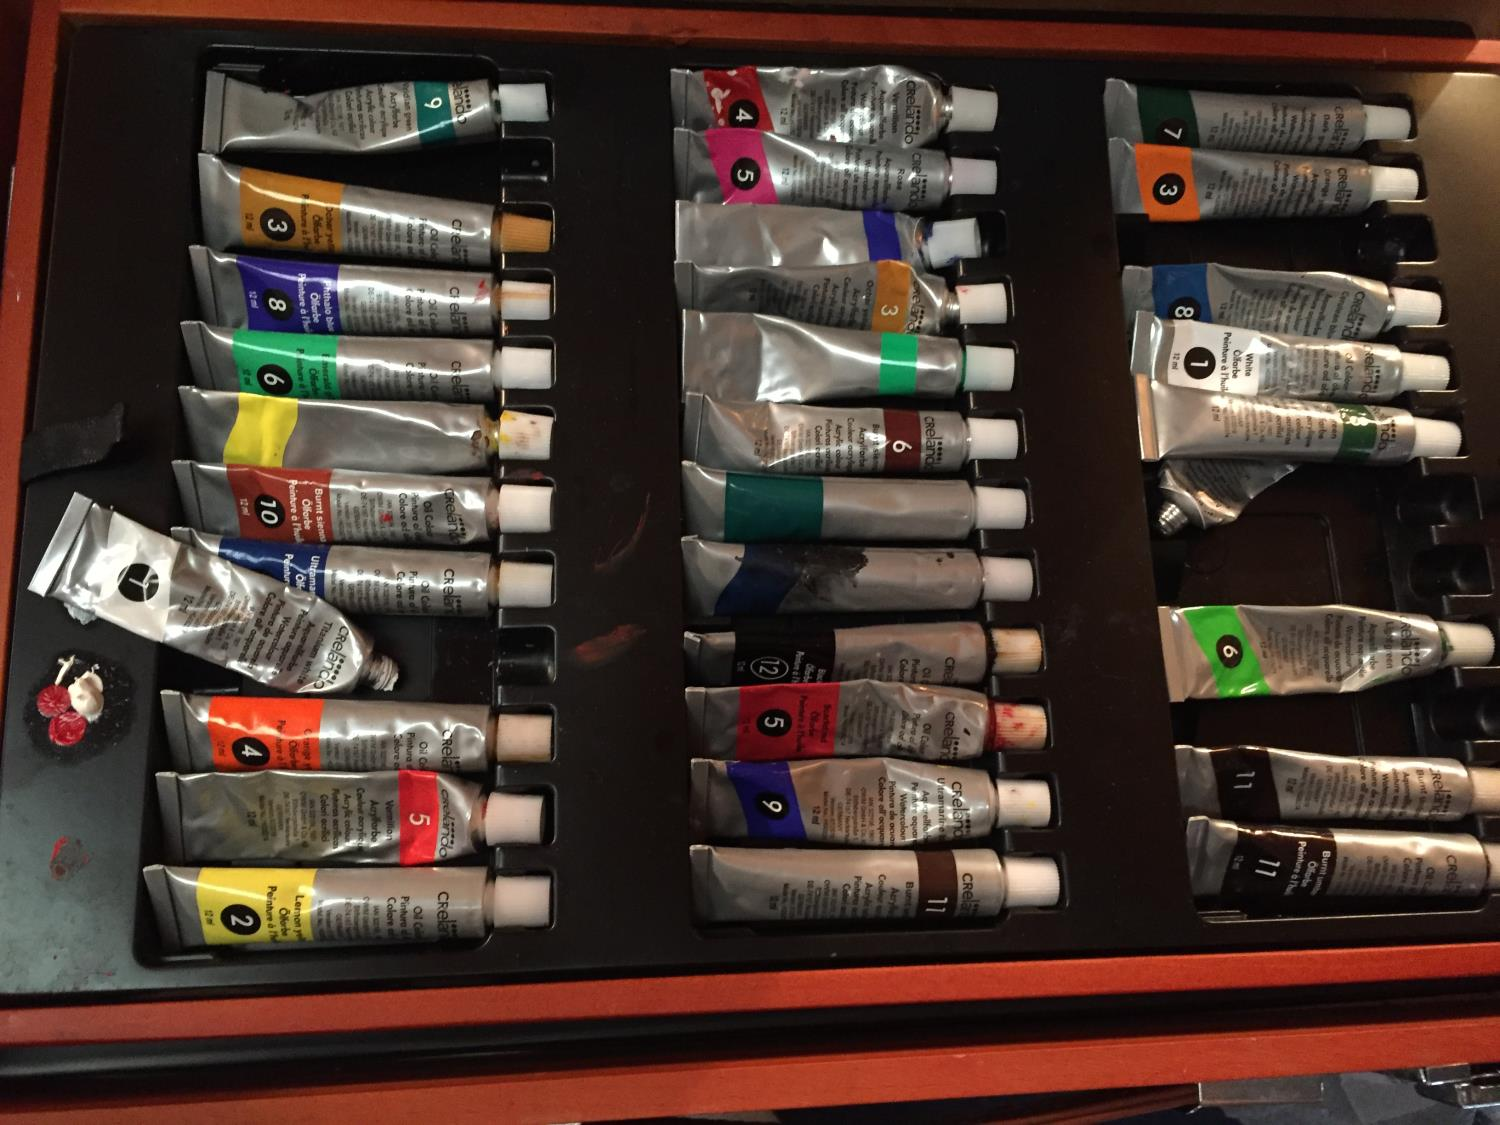 TWO CASES OF ART SUPPLIES TO INCLUDE FELT TIPS, PENCILS, OIL PAINTS ETC - Image 9 of 12